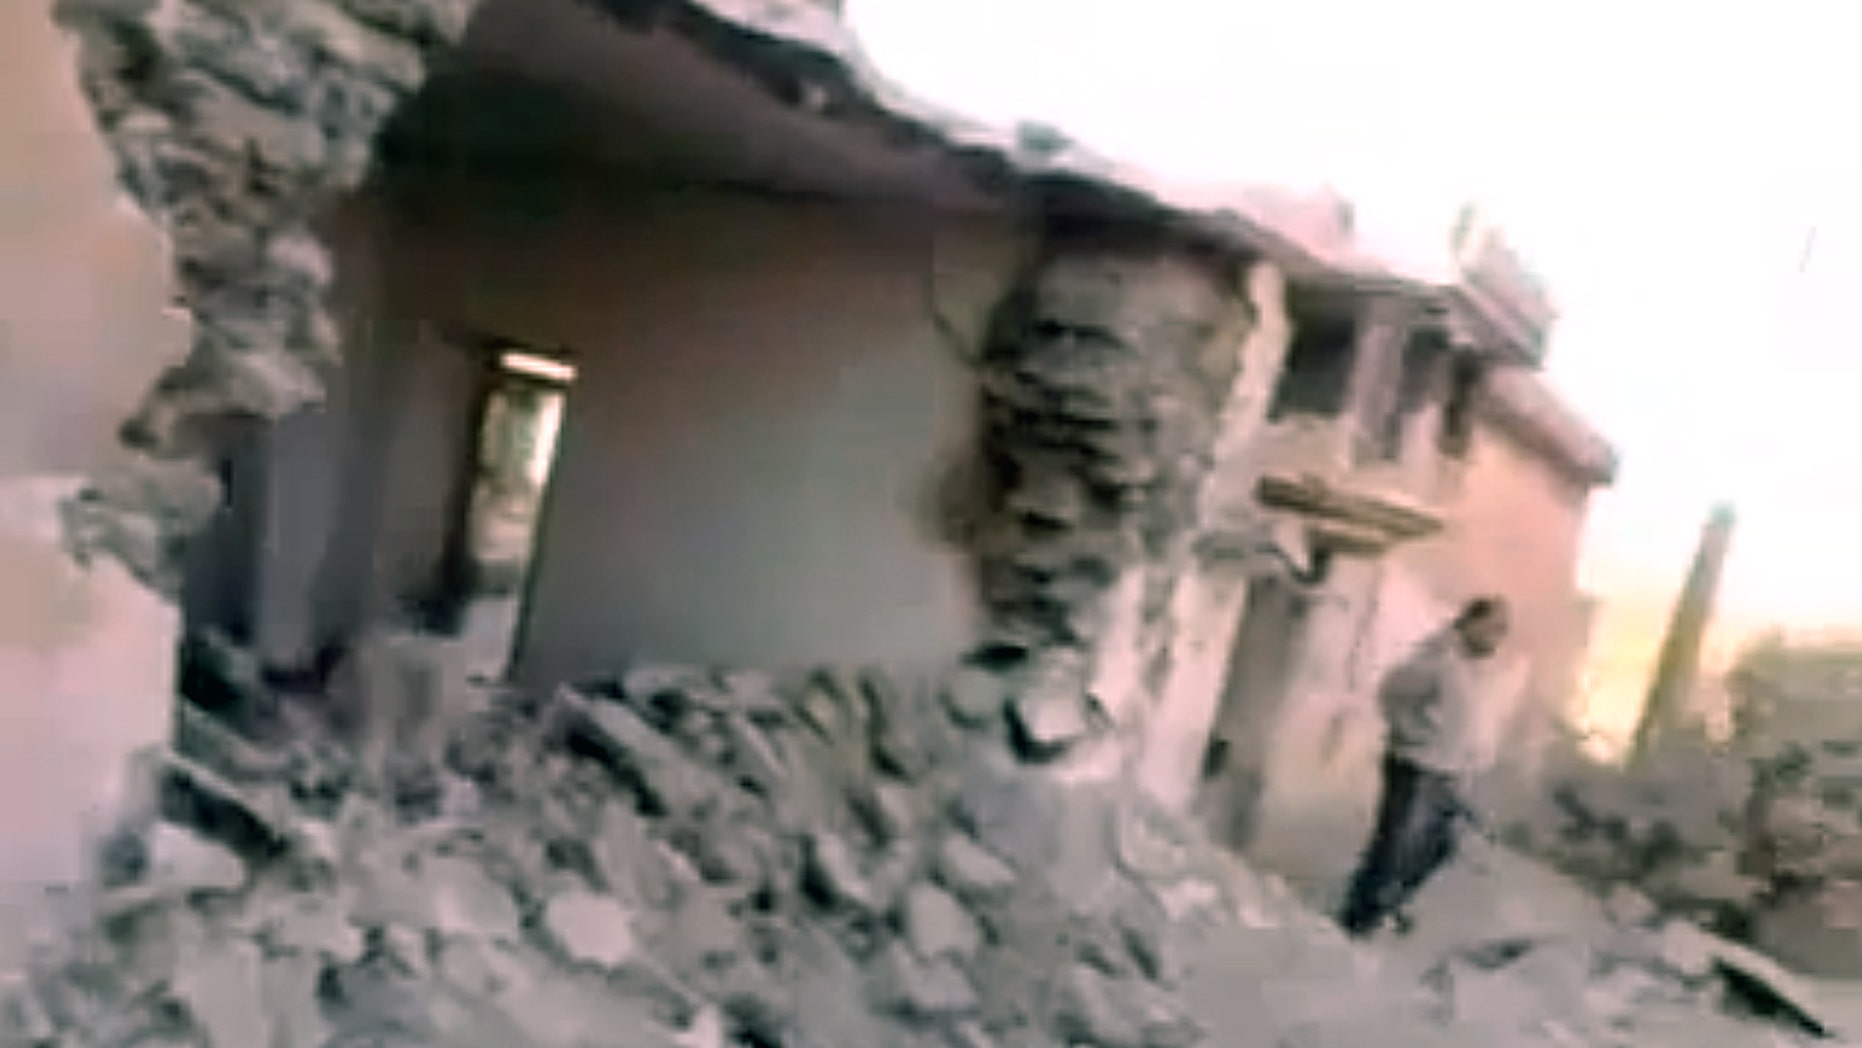 Sept. 22, 2012: In this image taken from video obtained from the Shaam News Network, SNN, which has been authenticated based on details in it, show damaged buildings and a bomb crater from government shelling  at Al-Bil village near the Turkish border, Idlib, Syria.